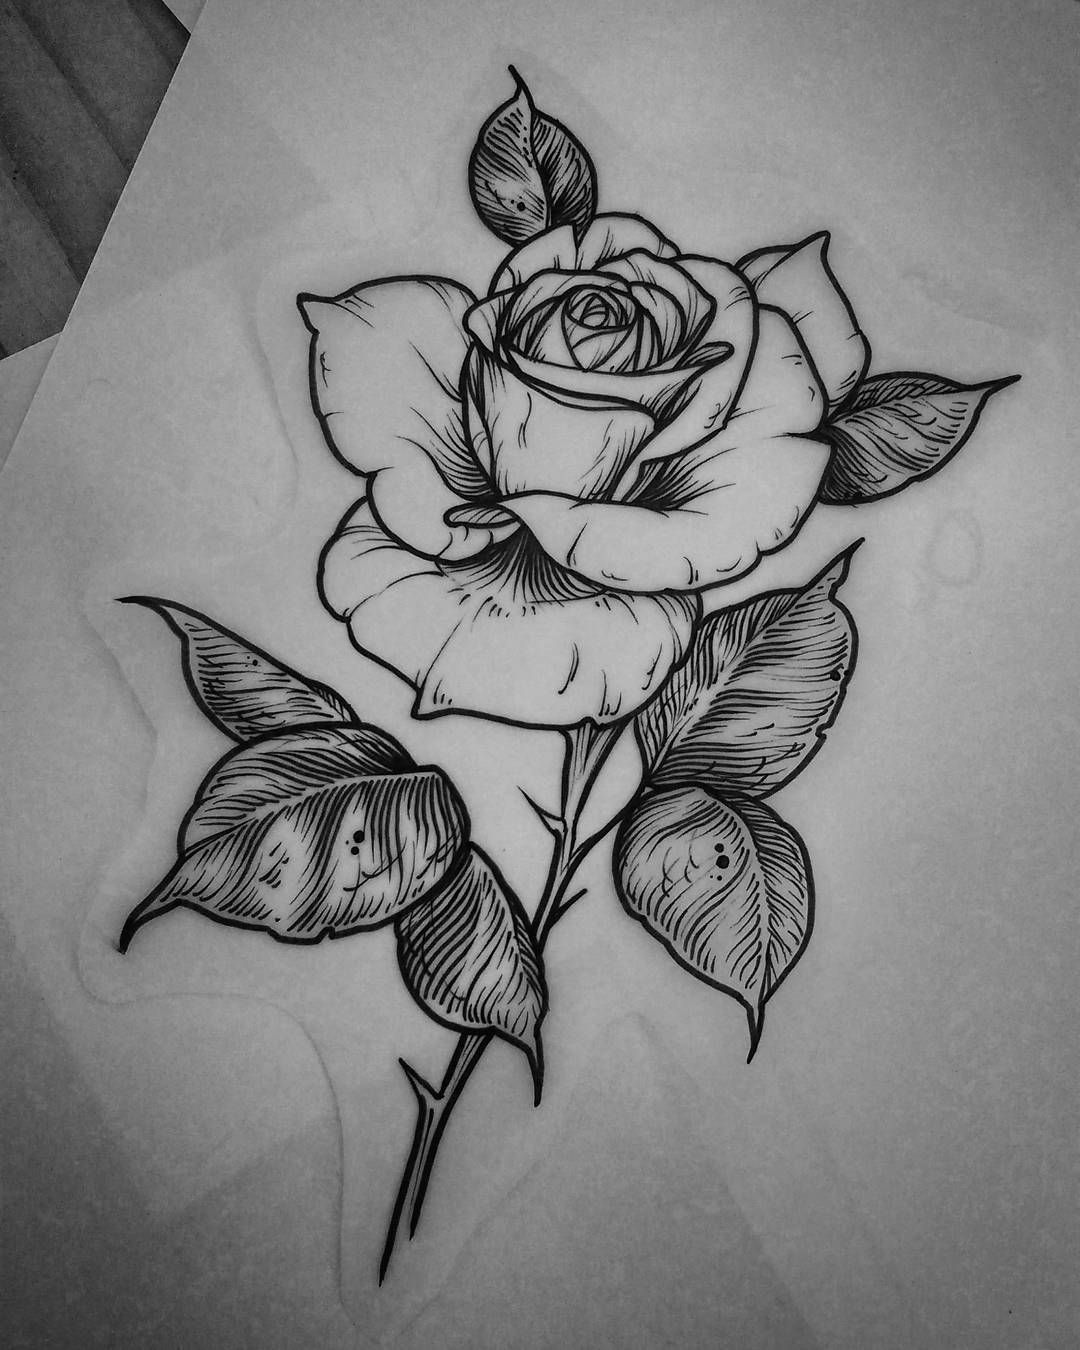 25 Beautiful Flower Drawing Ideas Inspiration Brighter Craft Beautiful Flower Drawings Rose Drawing Tattoo Flower Drawing